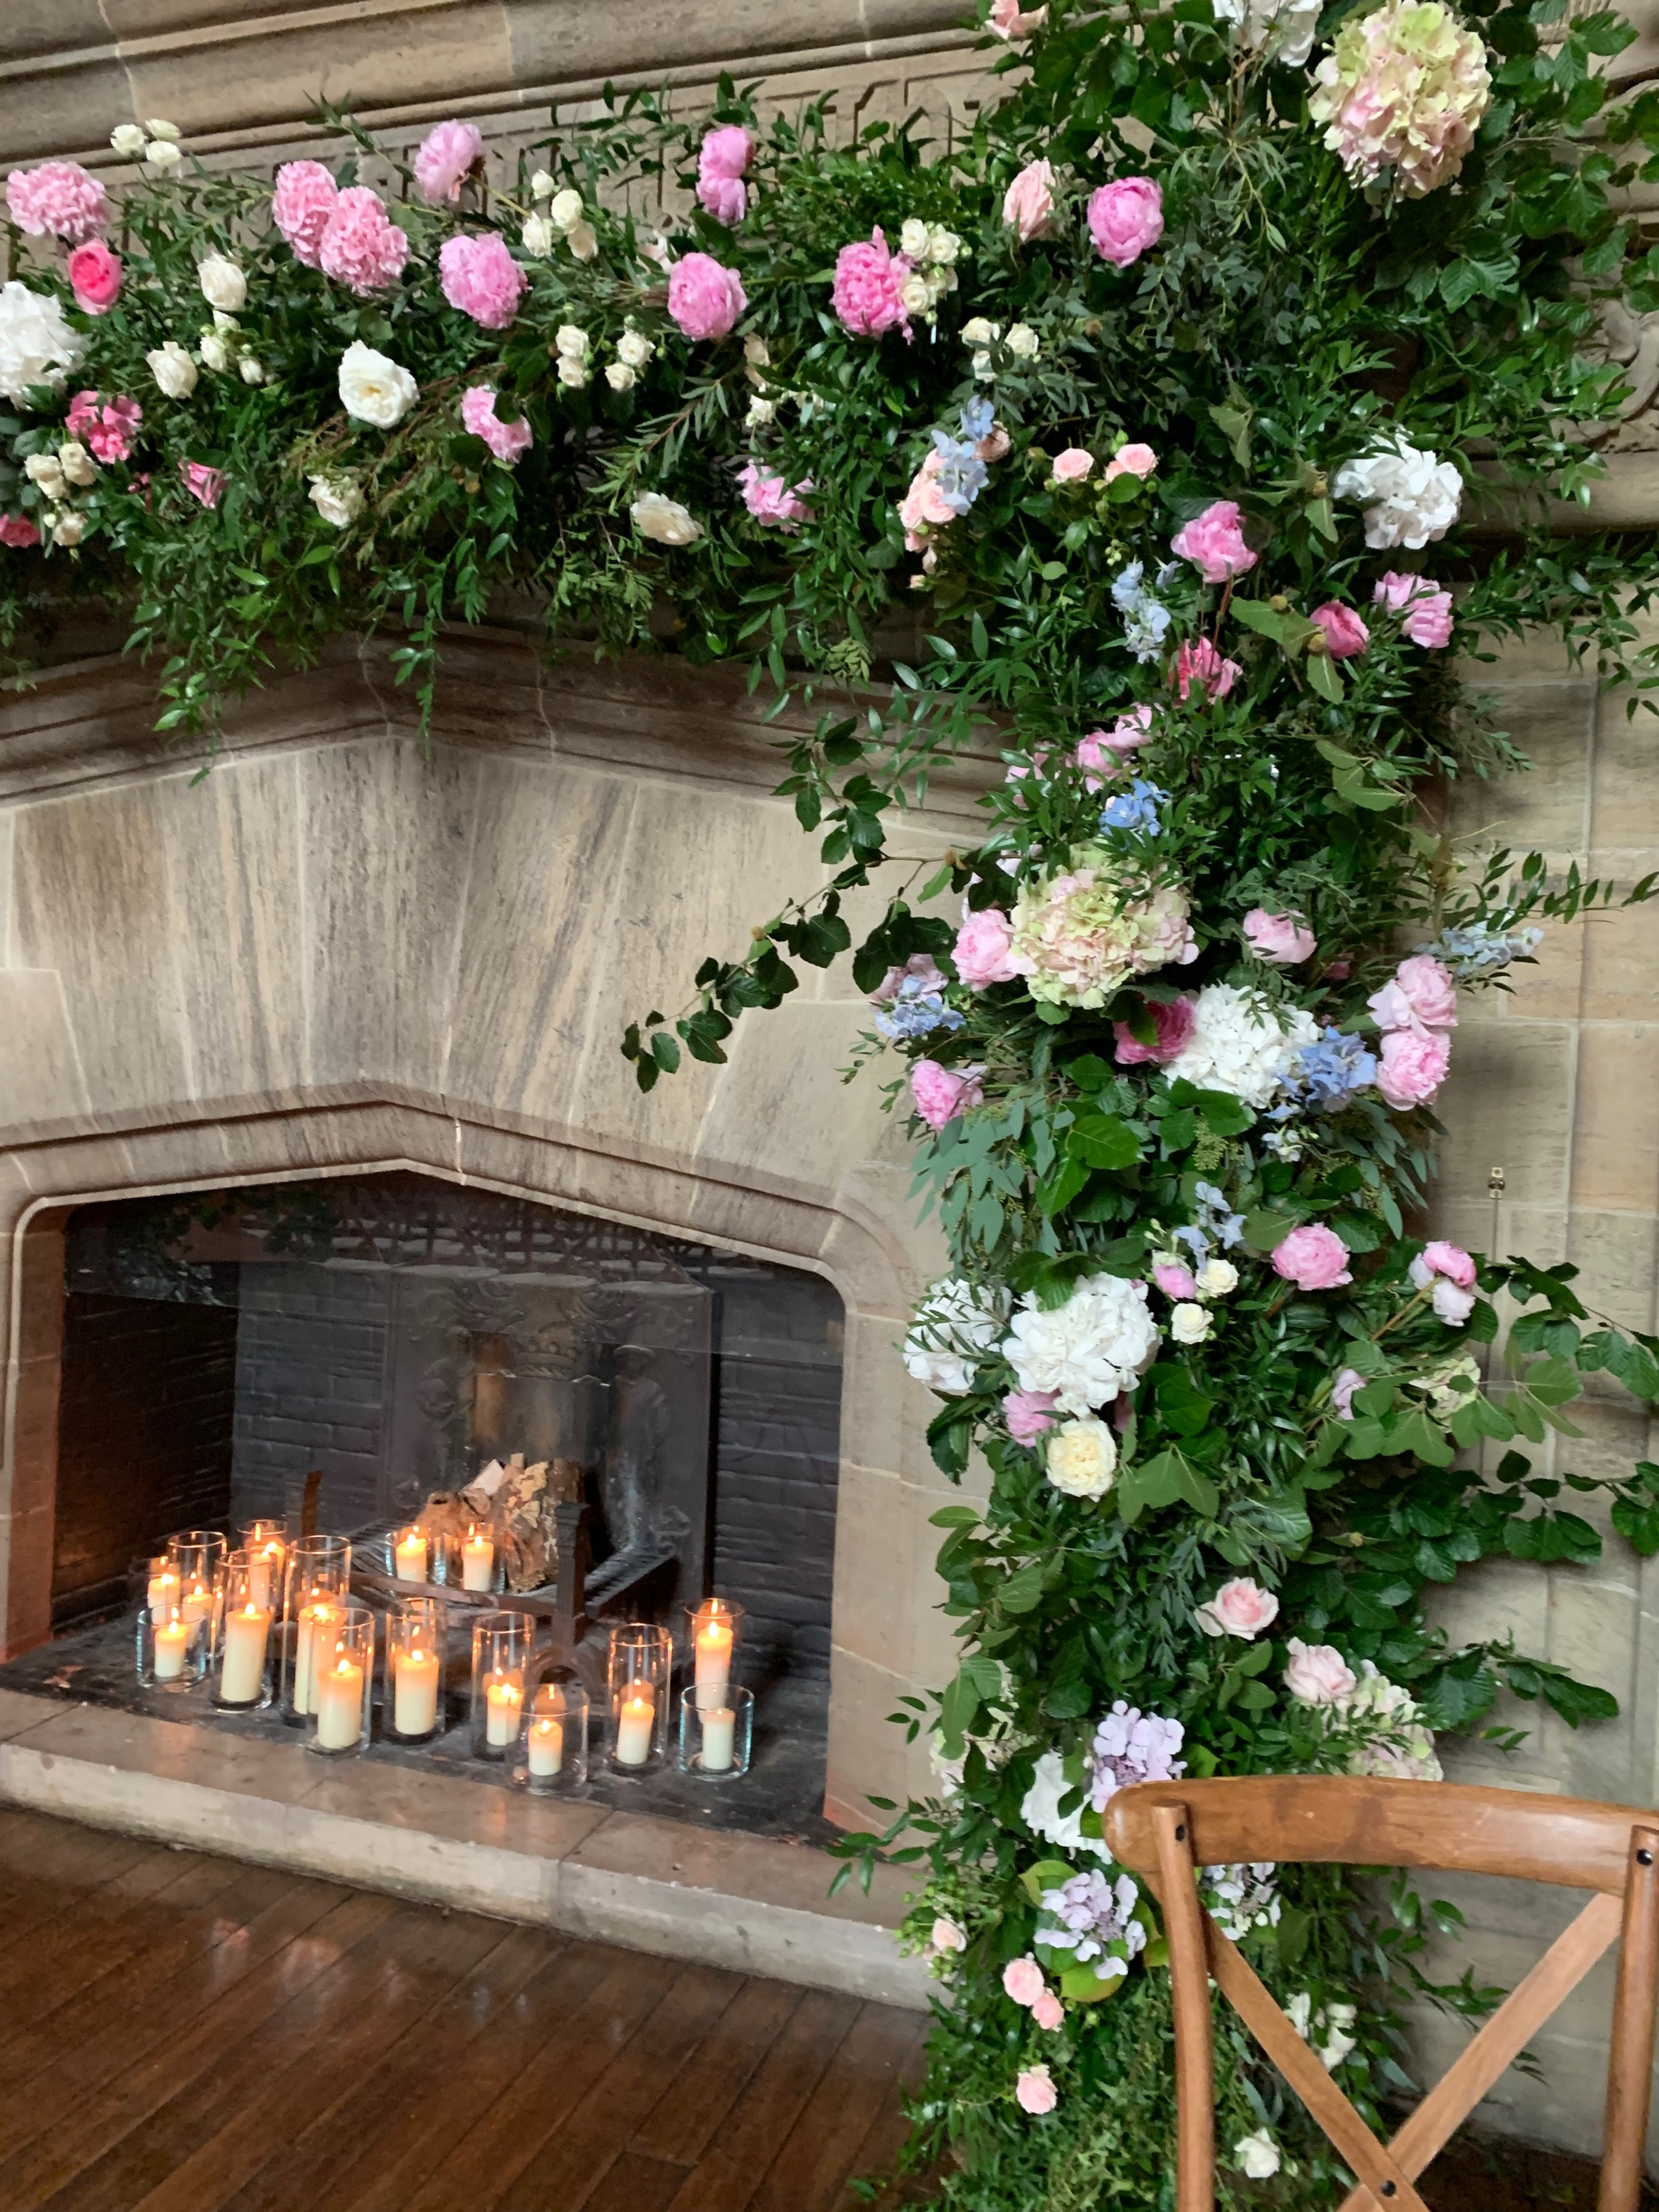 Fireplace flowers made without floral foam